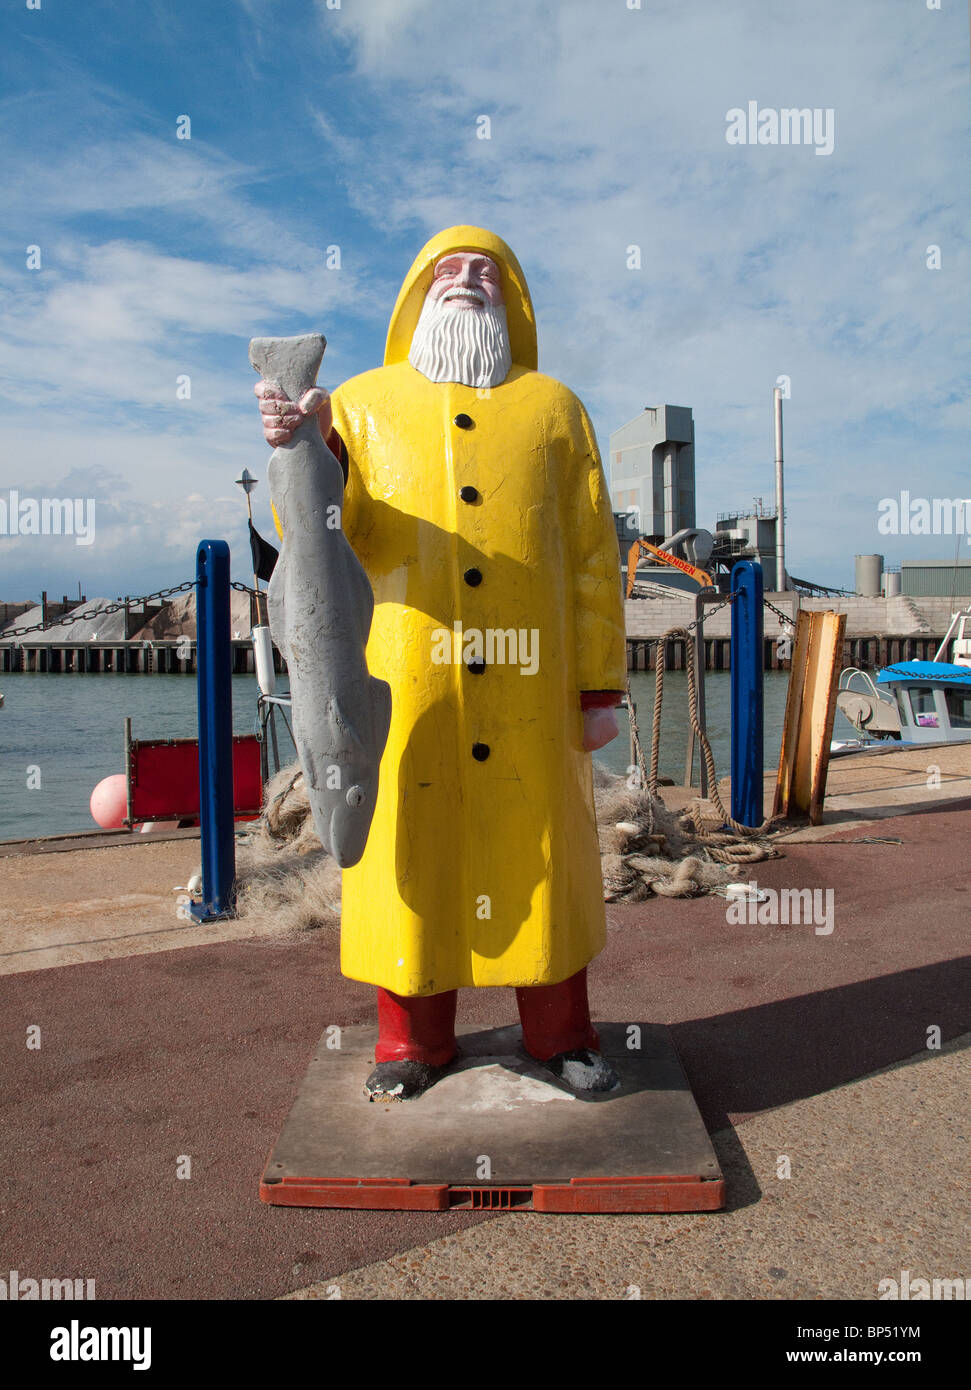 Fisherman figure on quayside at Whitstable, Kent - Stock Image